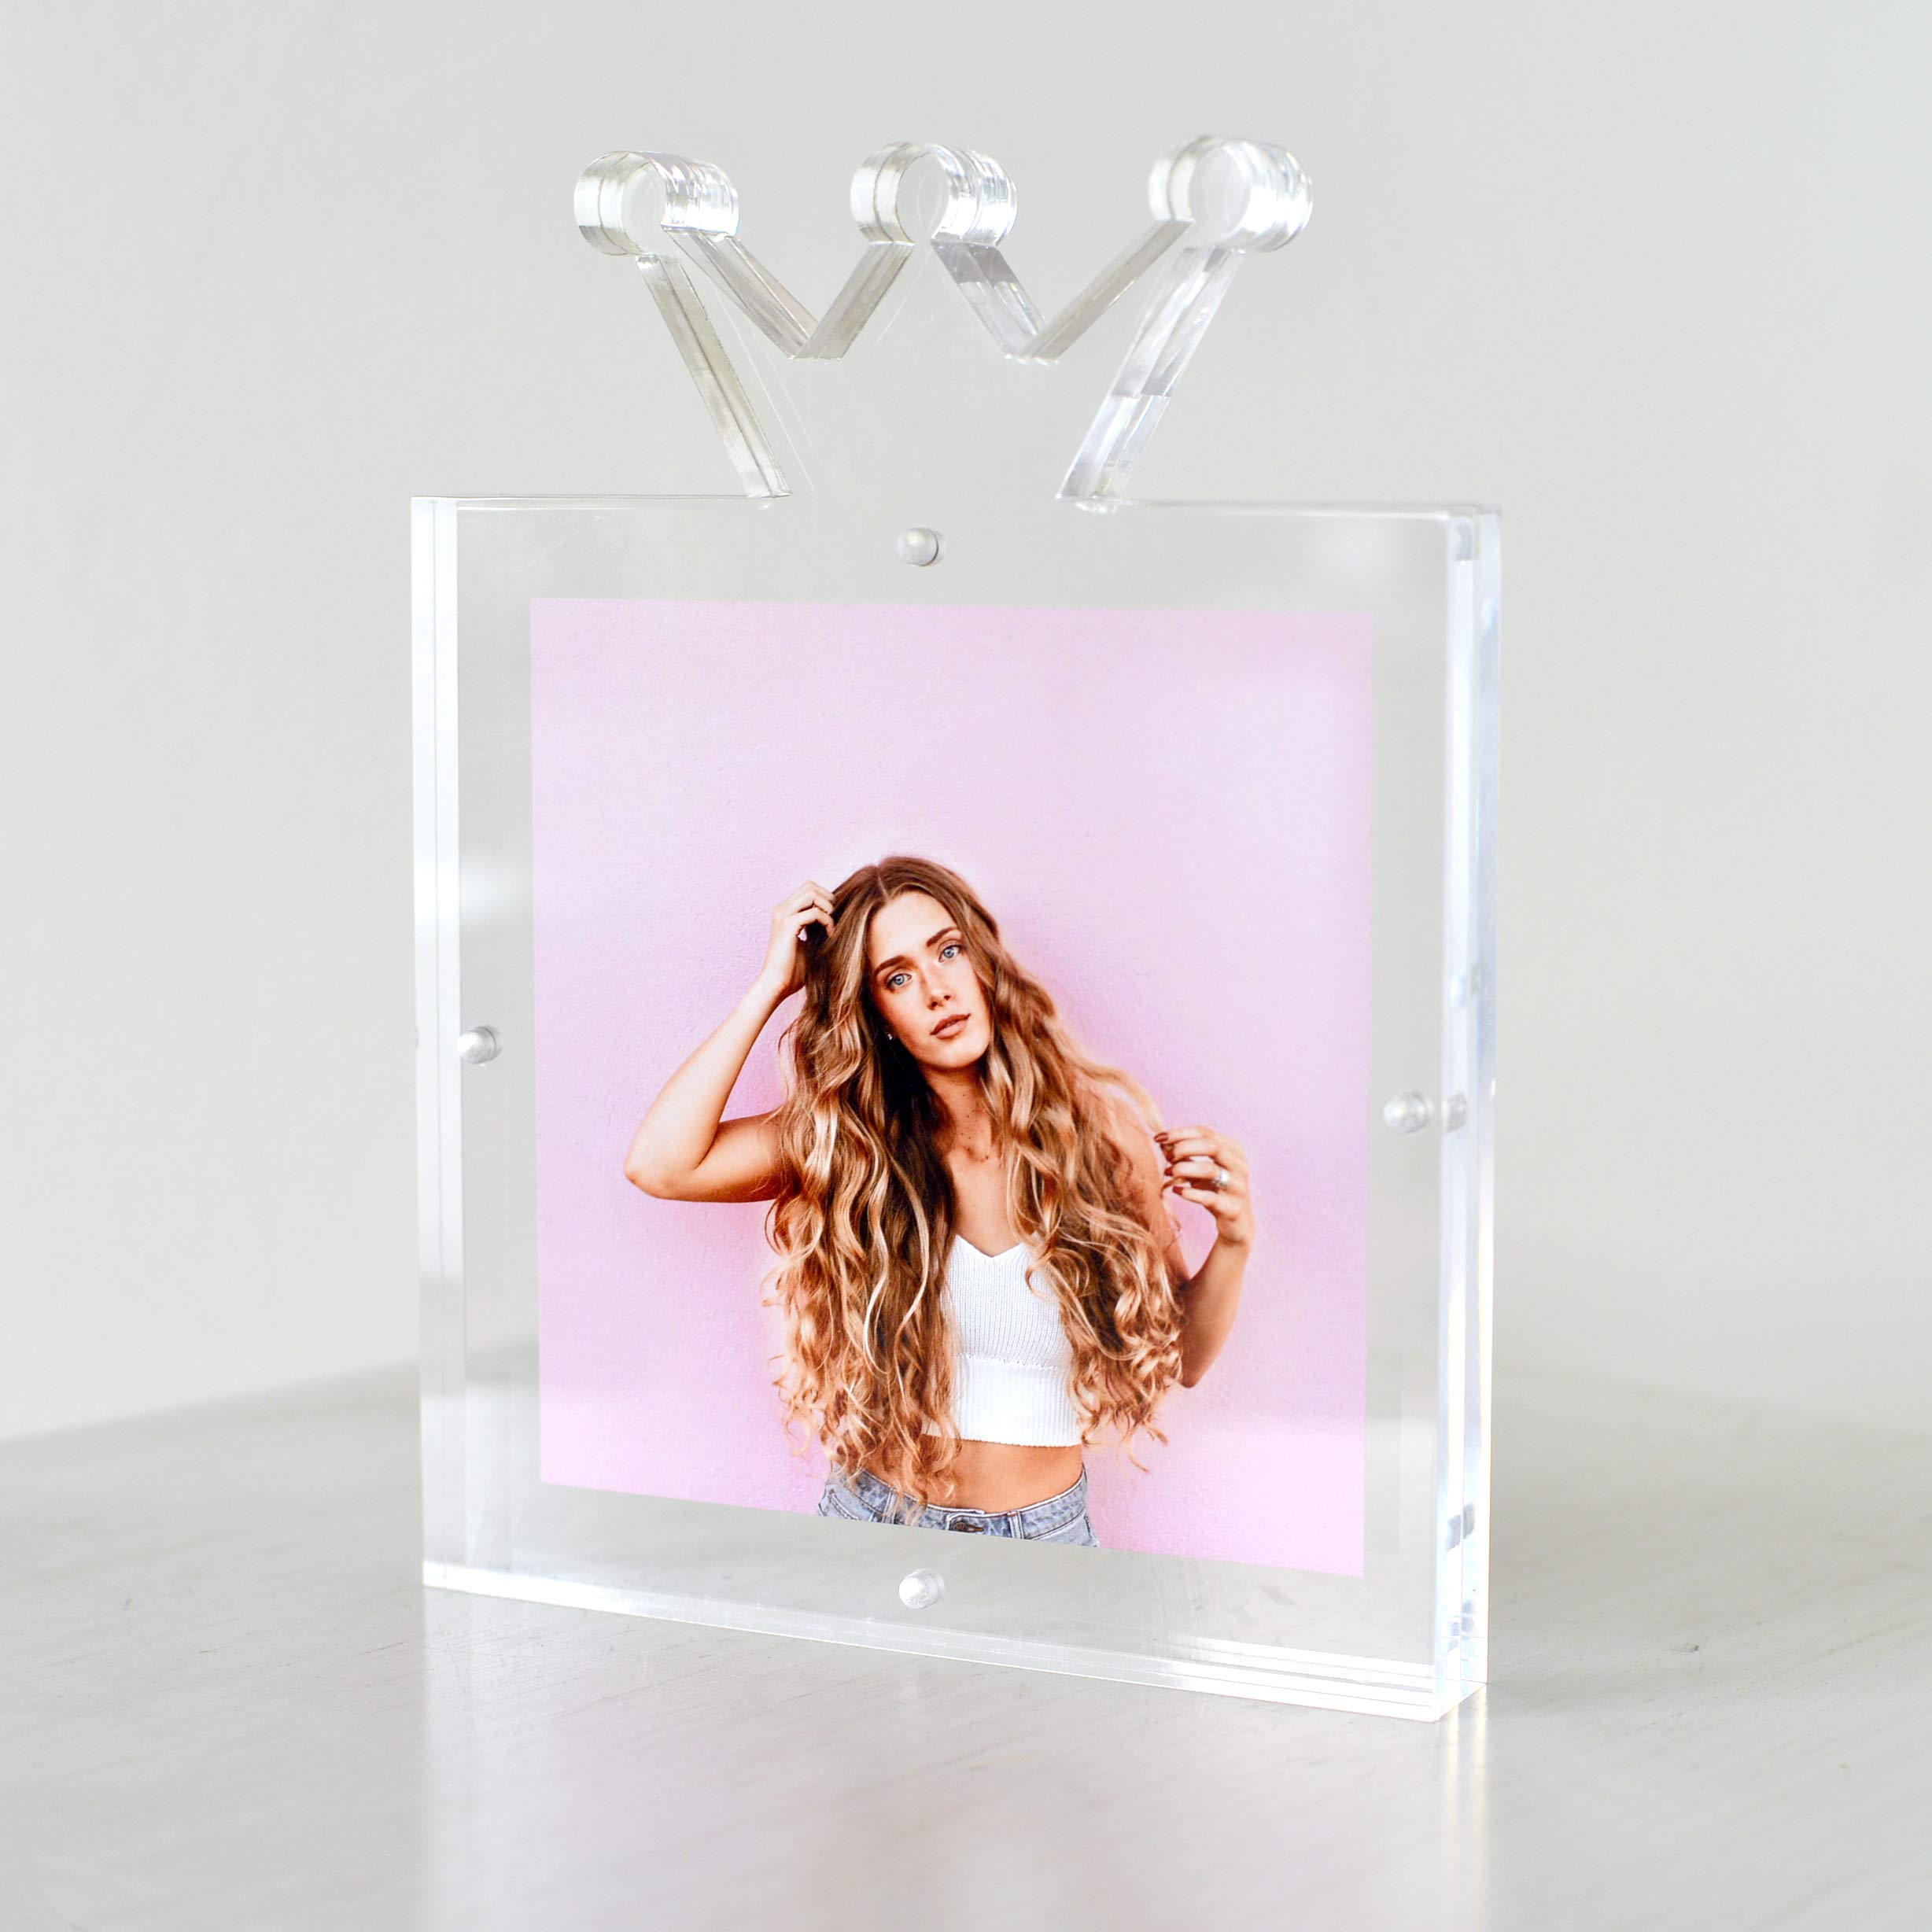 Acrylic Picture Frame, 6x6'' or 4x6'', Unique Crown Design, Crystal Clear, Premium Quality, Double Sided, Frameless, Floating Look, Elegant Box Packaging, 20mm Thick by TOVLIS